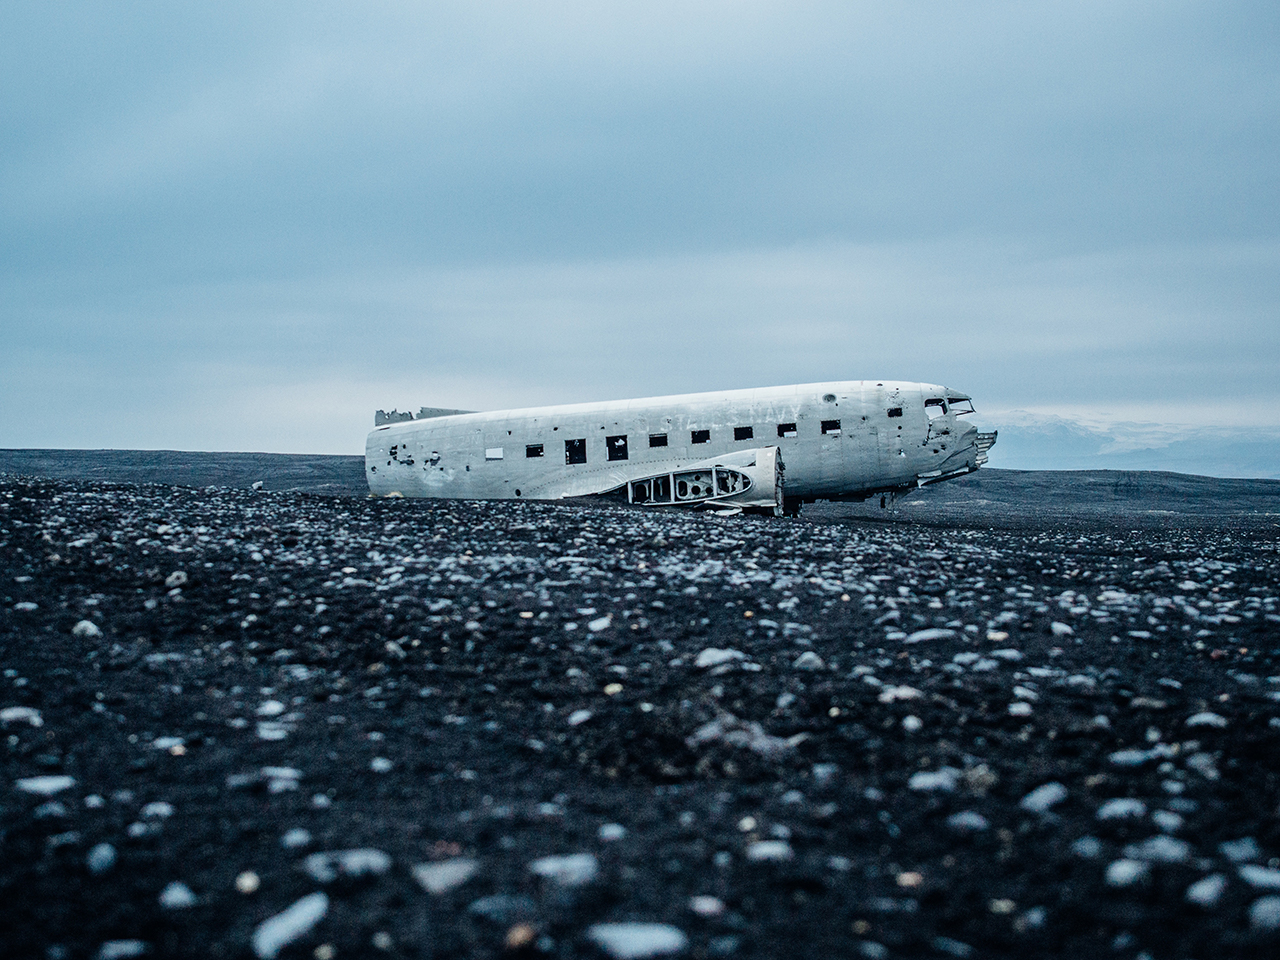 crashed plane on pebbles